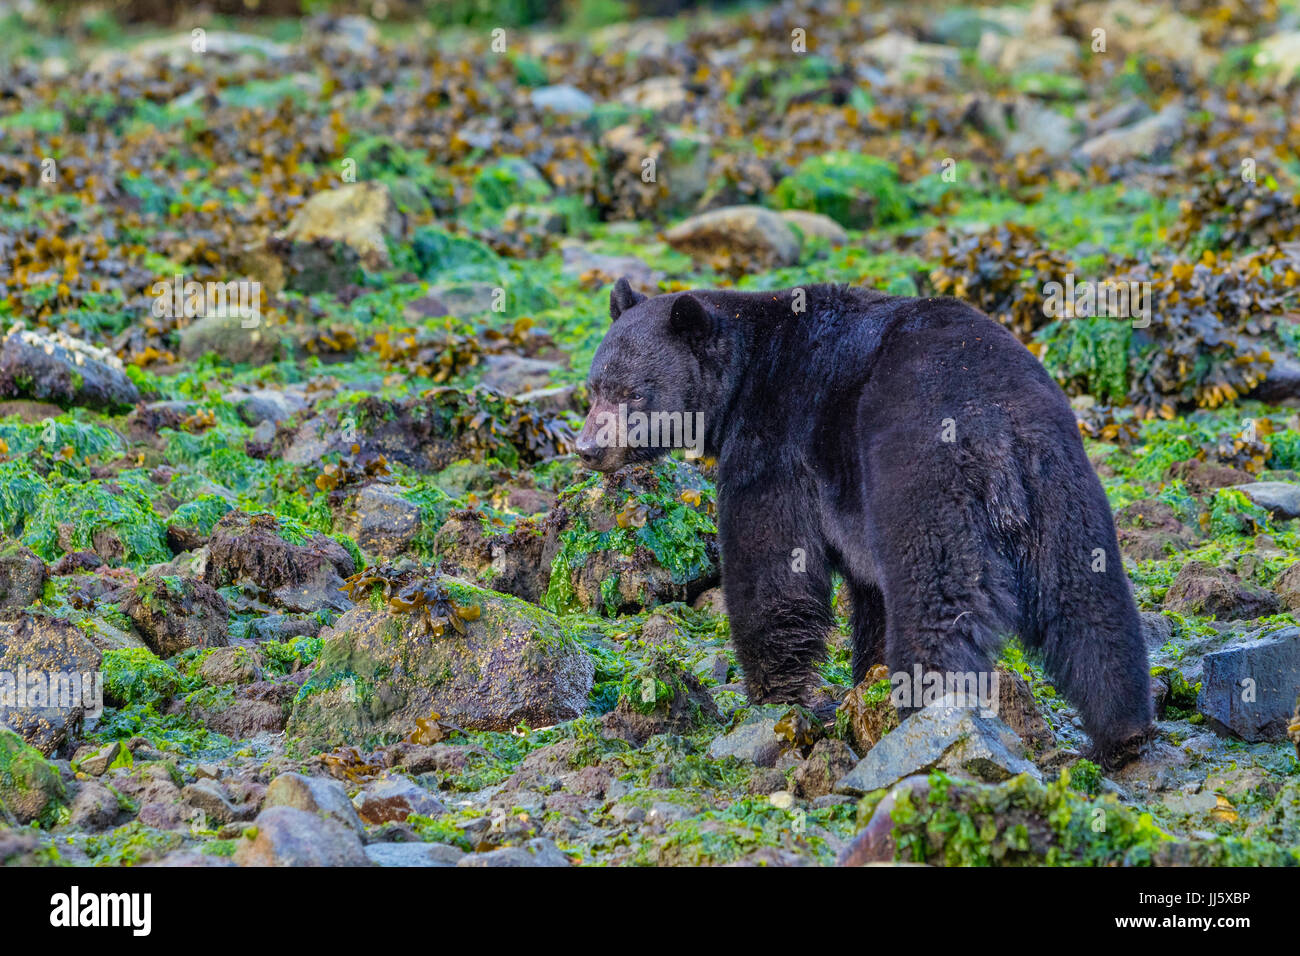 Black bear feeding along the beach at low tide, rolling rocks in the search of crabs and mussels, British Columbia, - Stock Image